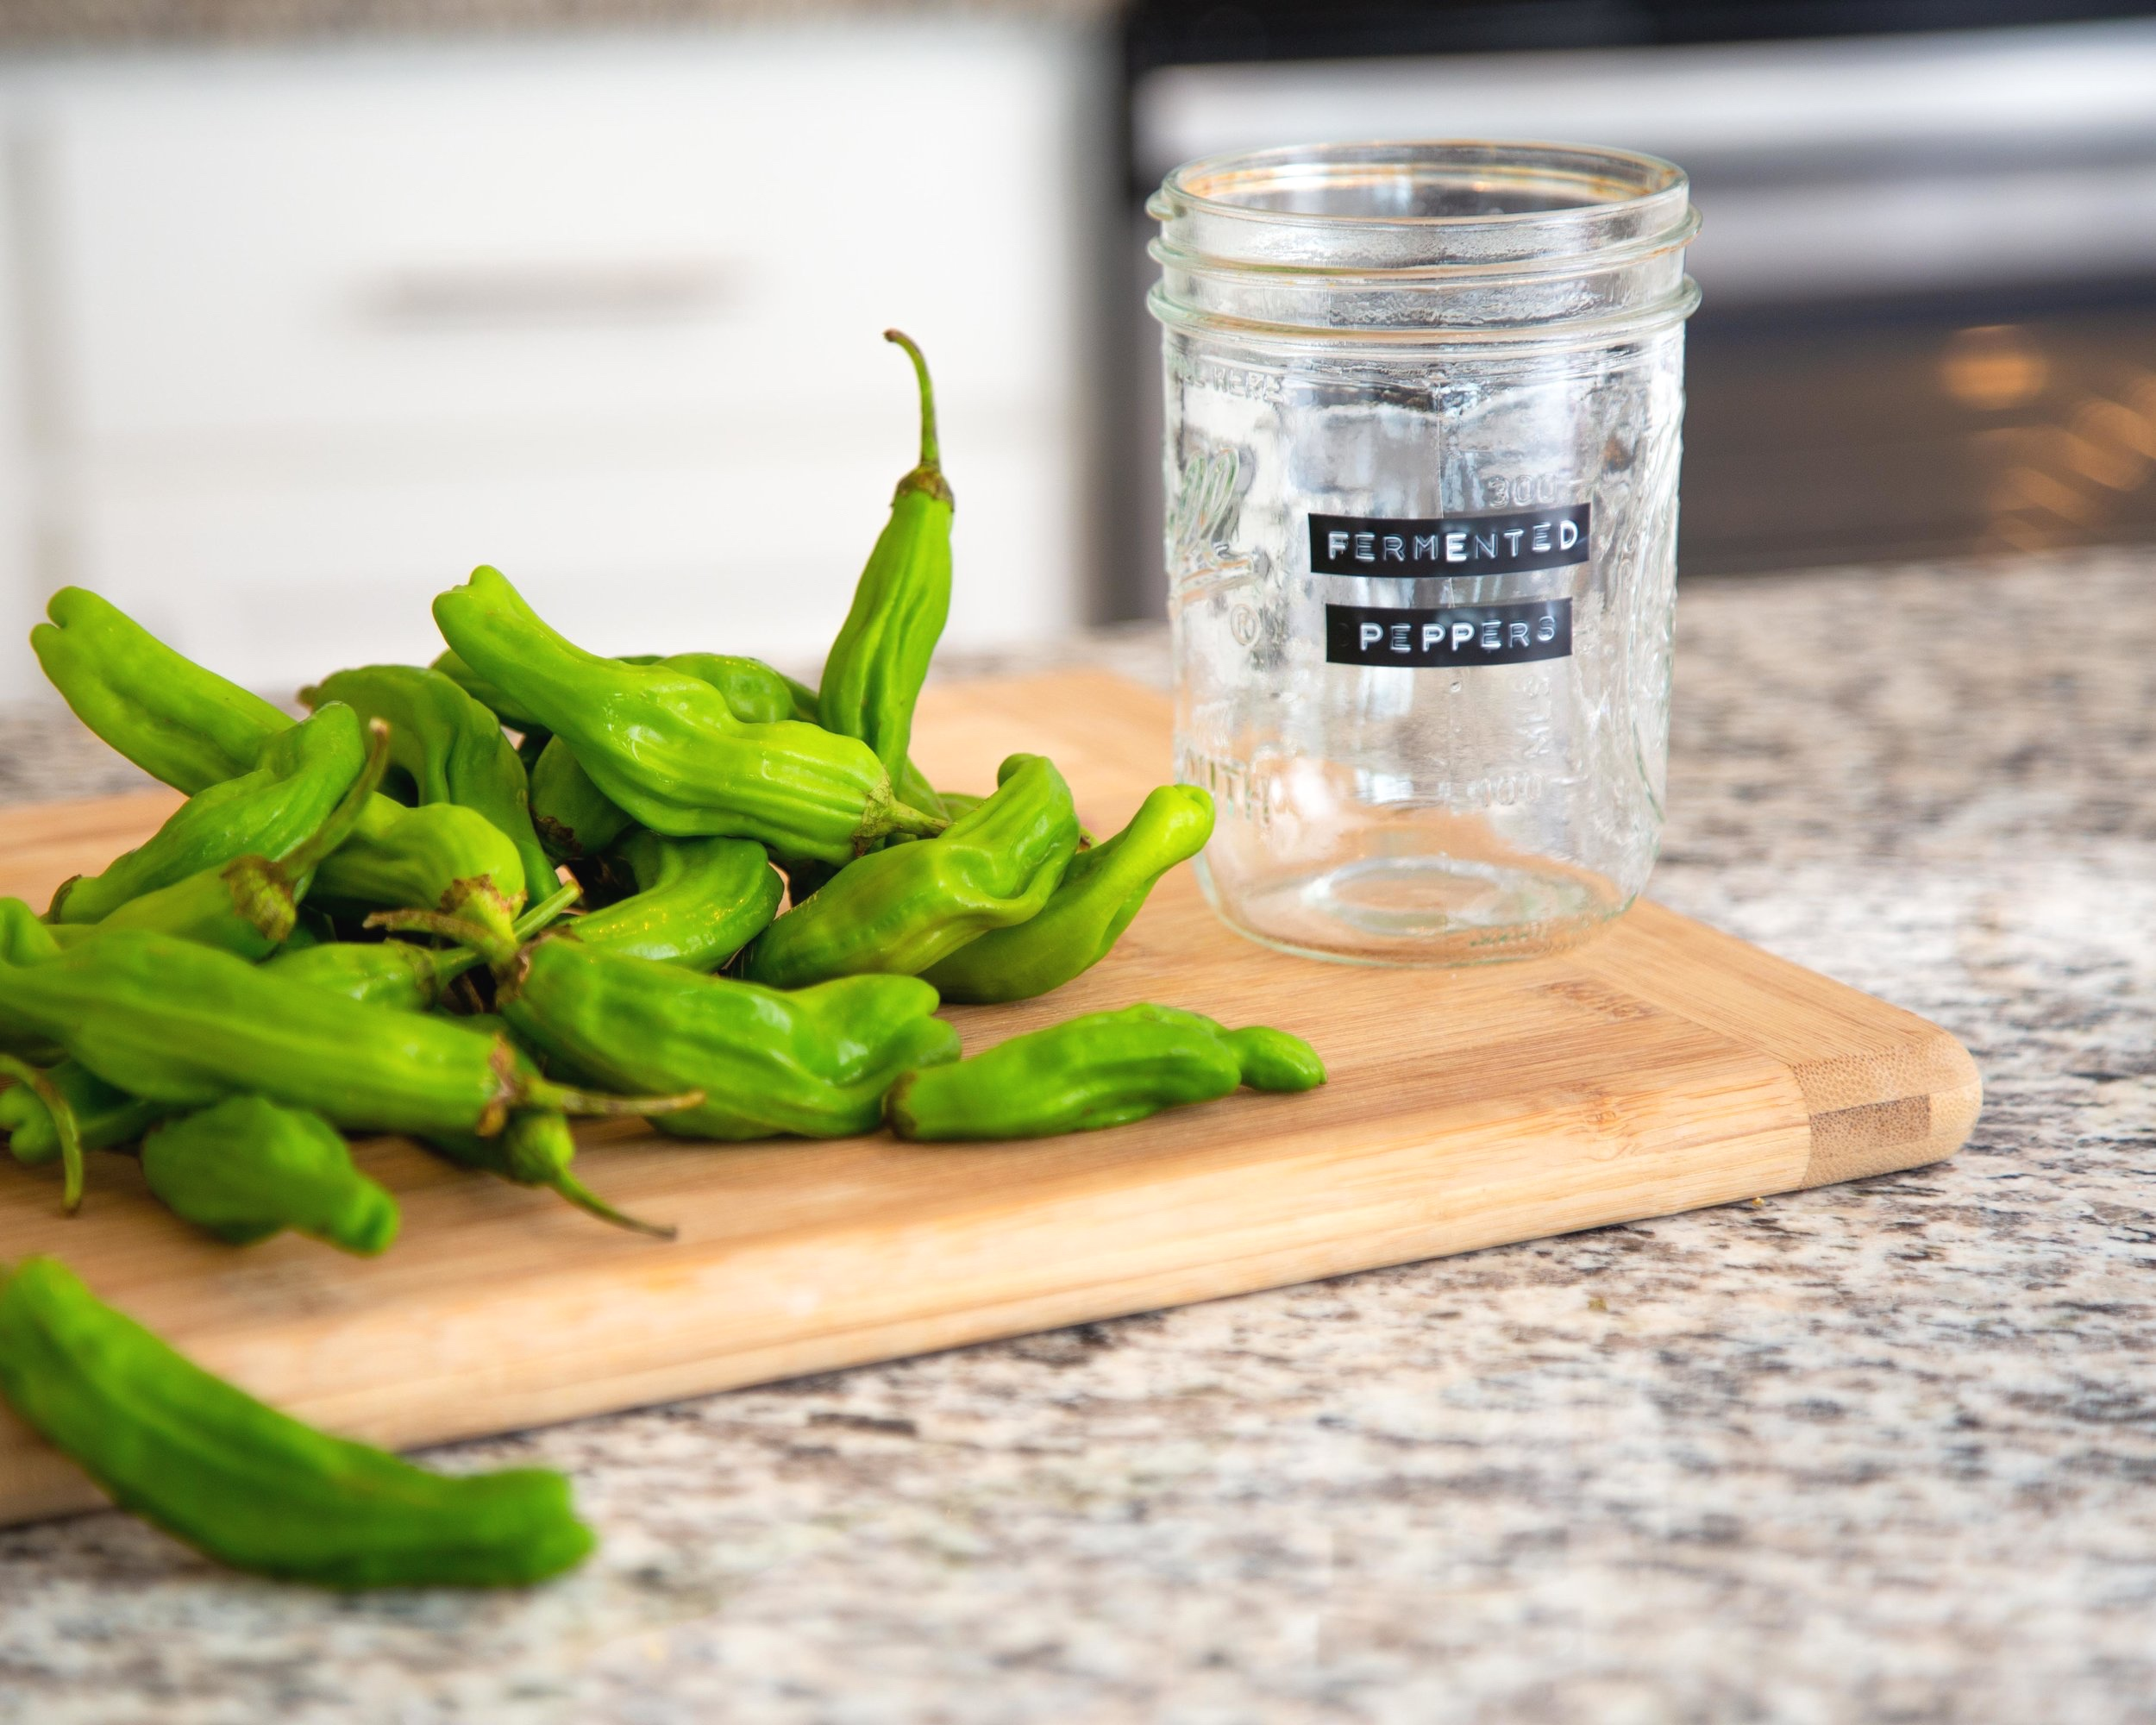 How to Ferment Peppers